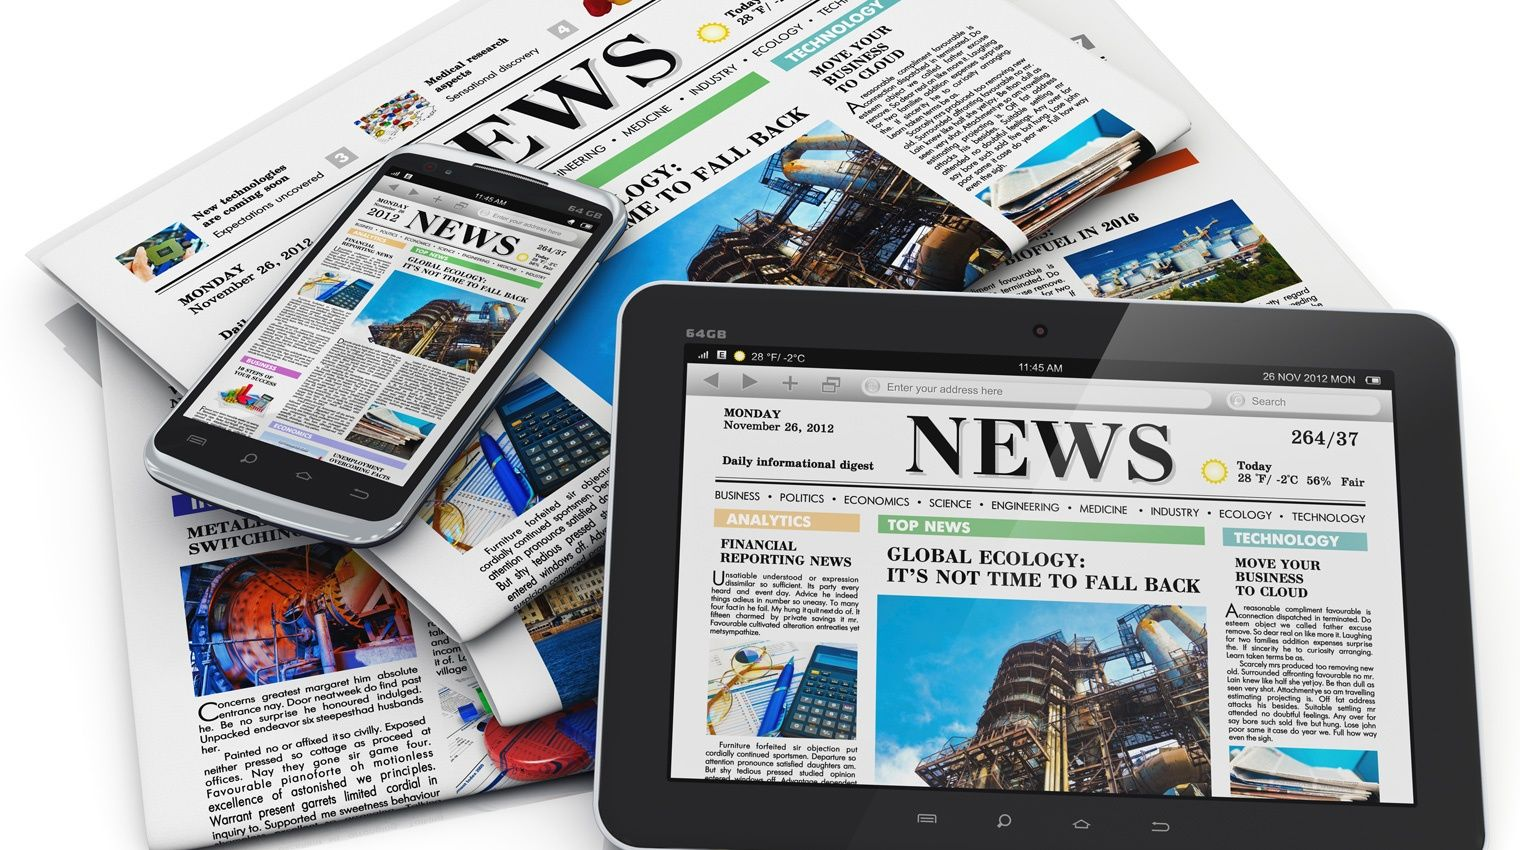 4 Factors to Remember Before Scraping News Websites